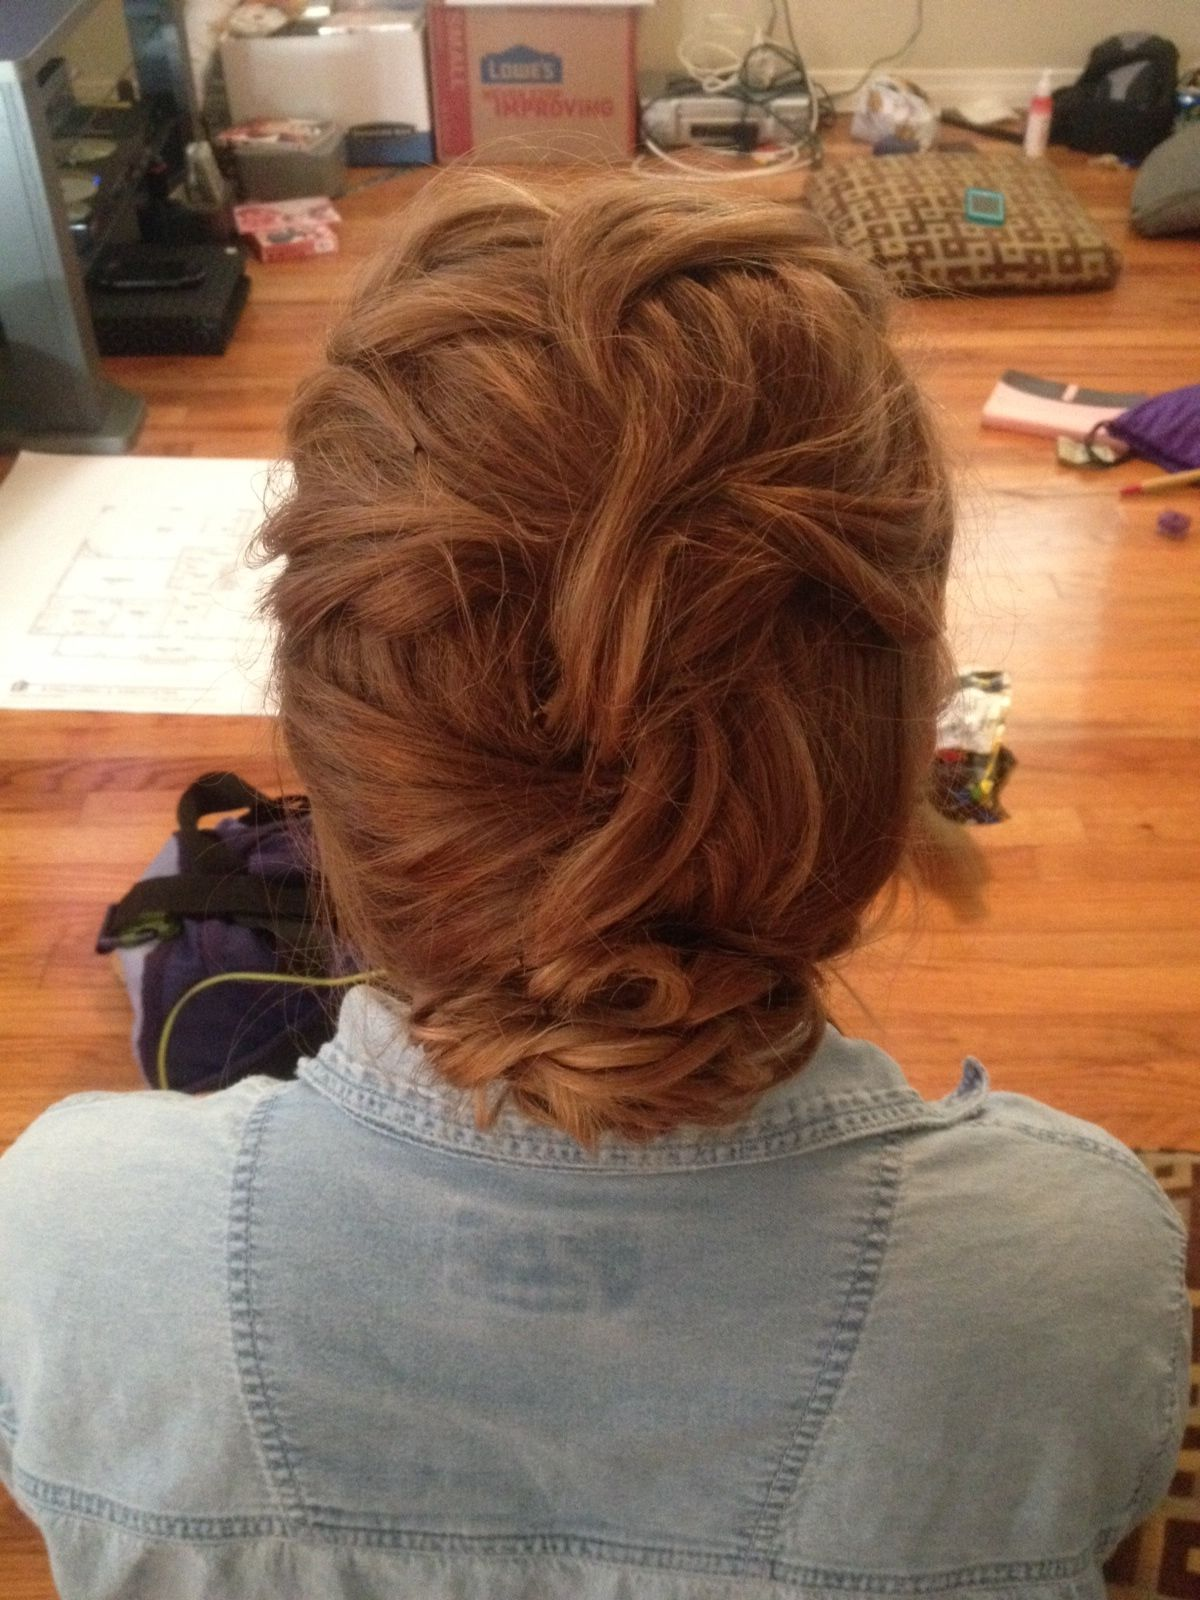 French braided updo with curly twists at the end for homecoming! Good for short, thick hair. Would look stunning for a wedding with a veil || Hair by Kayla Johnson